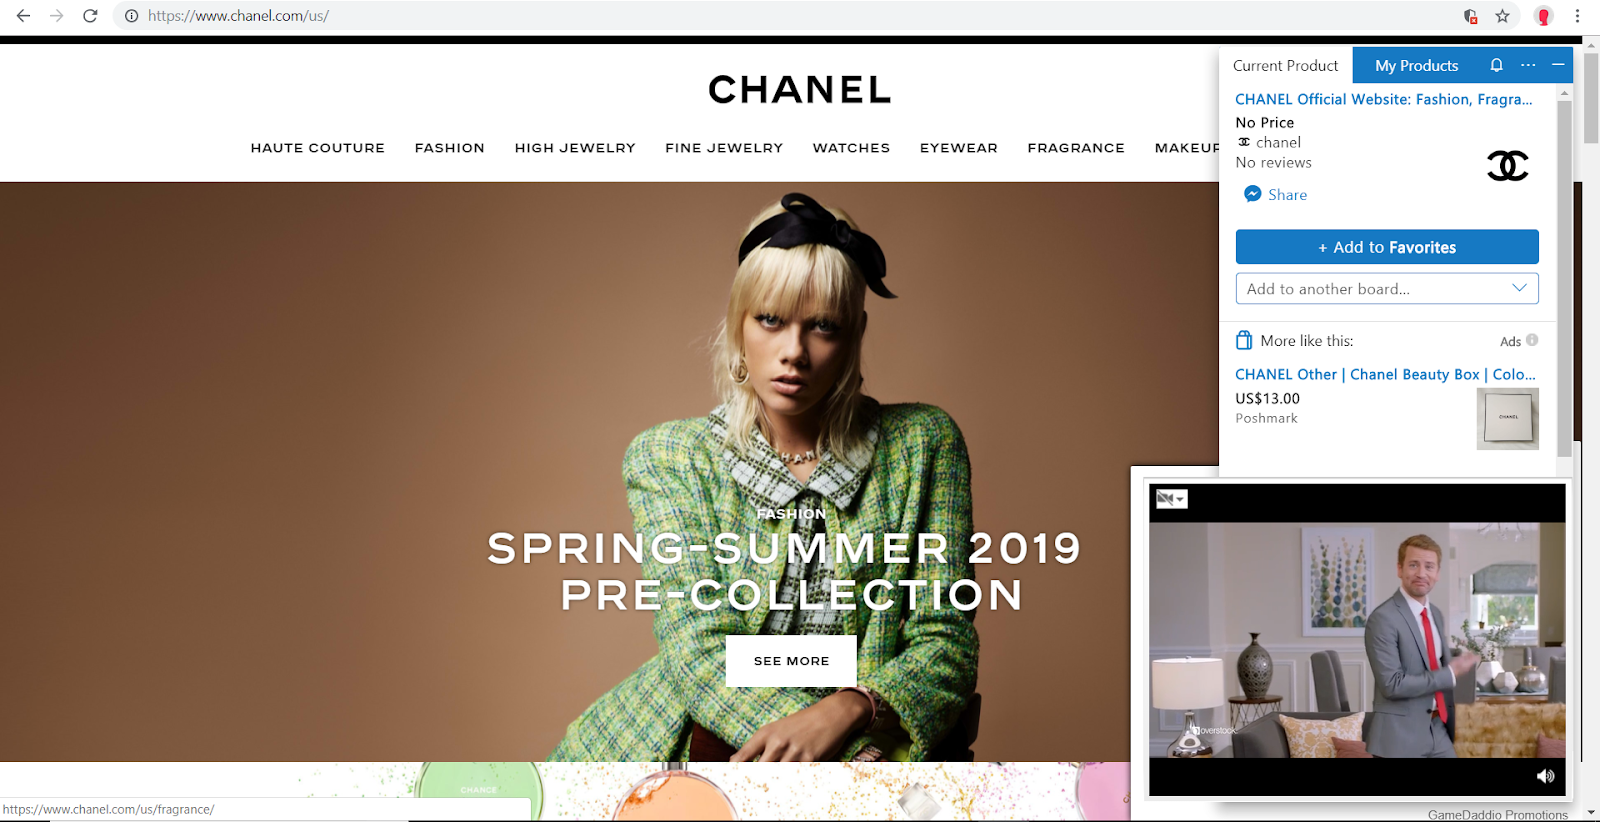 chanel video browser injected ads